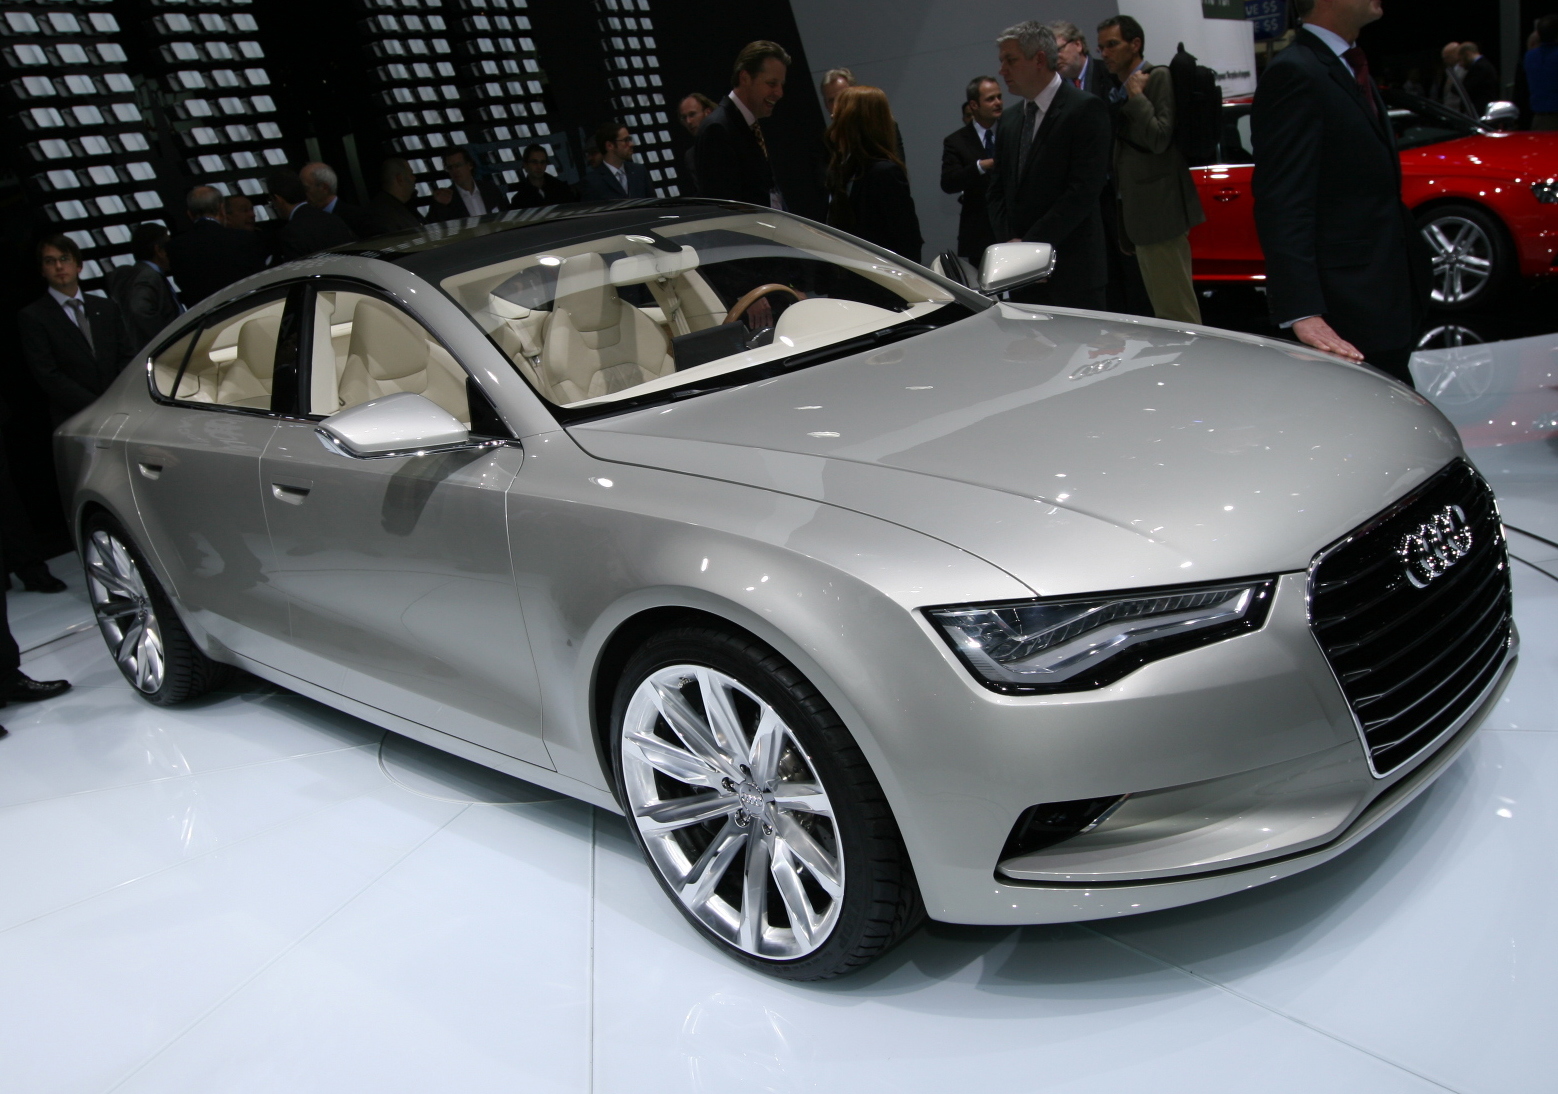 Audi A7 Sportback Concept Photoshoot Video